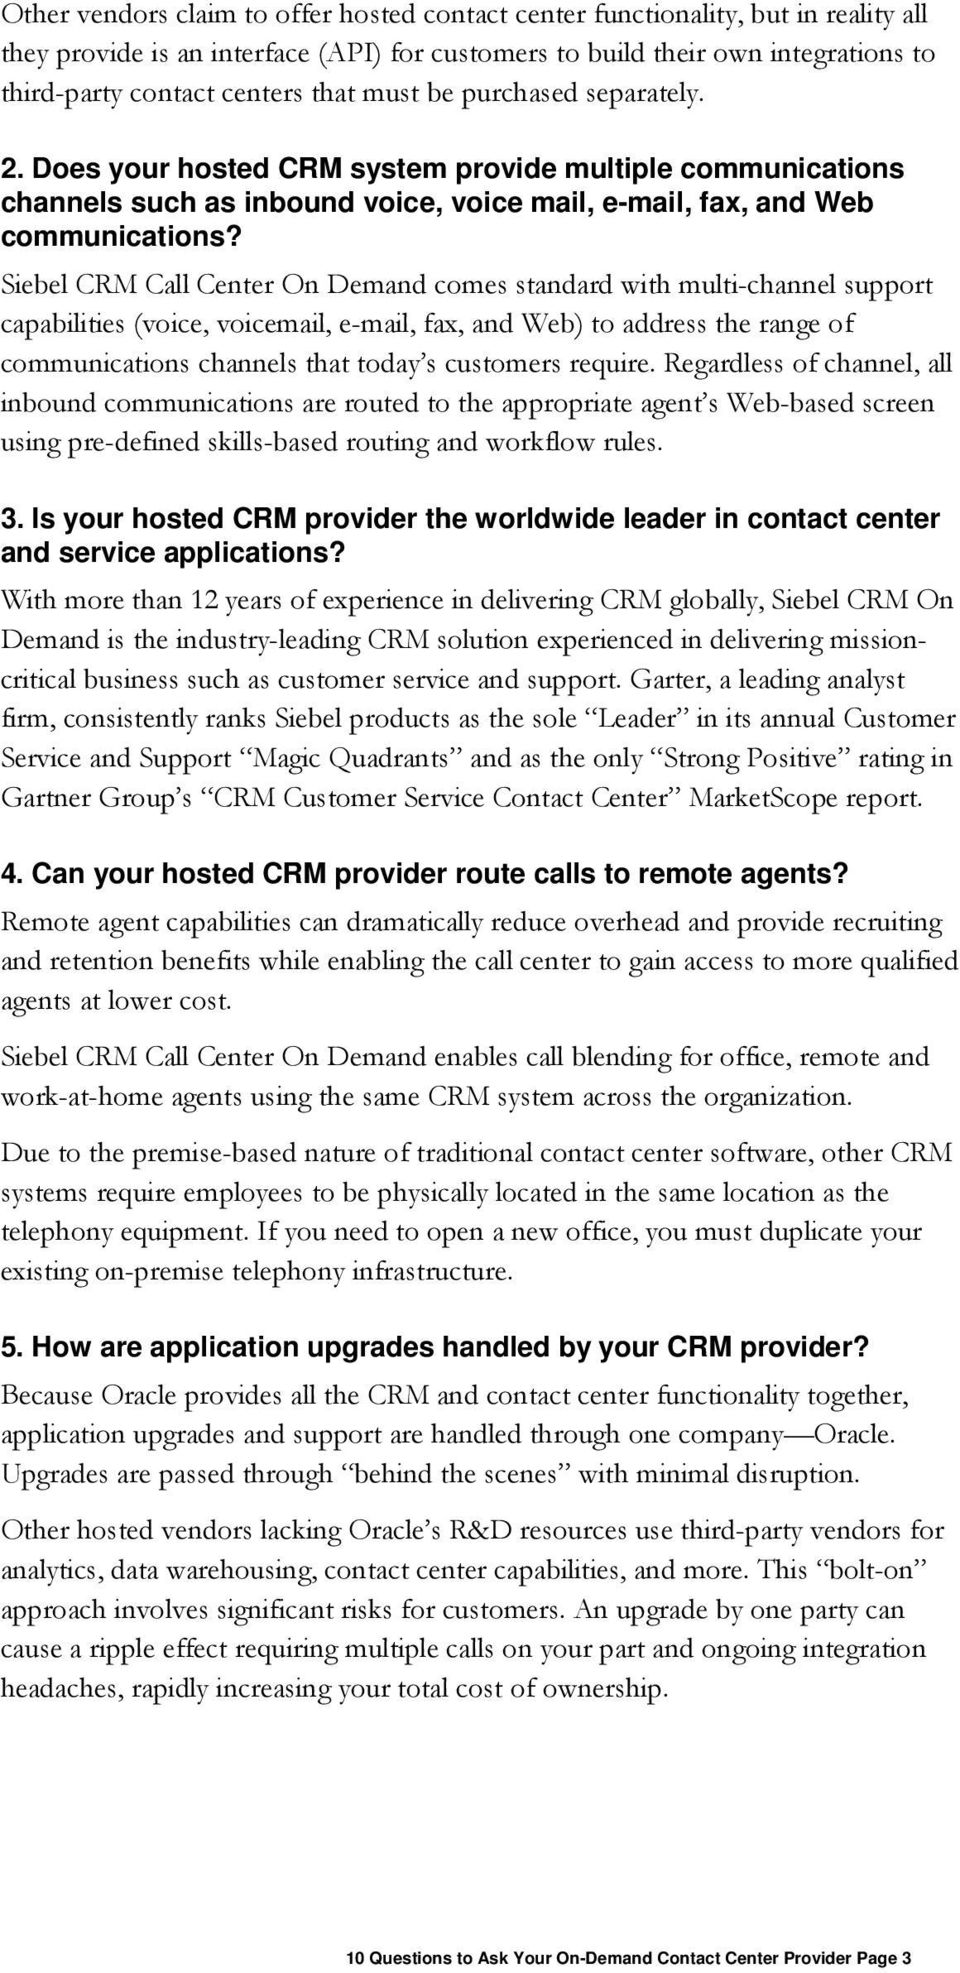 Siebel CRM Call Center On Demand comes standard with multi-channel support capabilities (voice, voicemail, e-mail, fax, and Web) to address the range of communications channels that today s customers